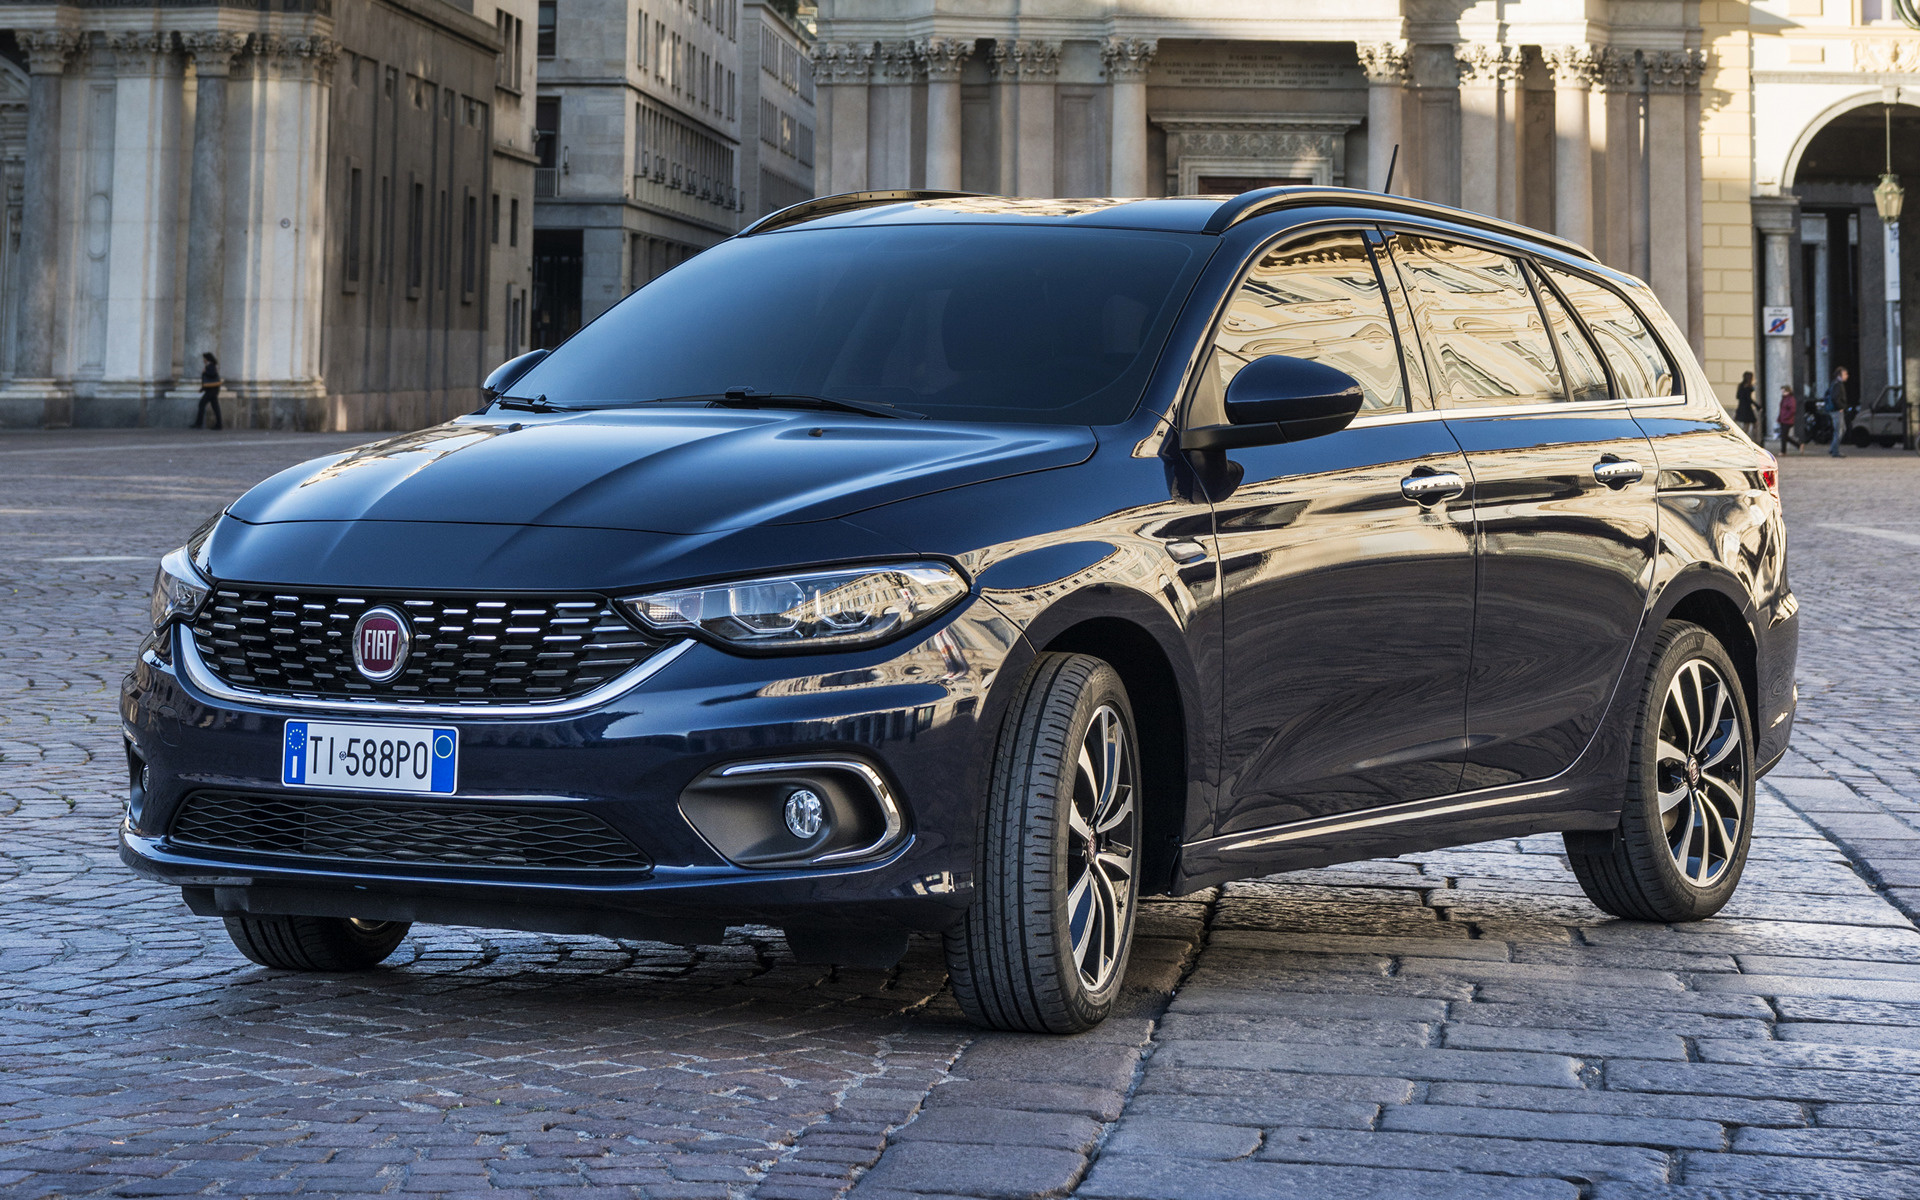 2016 Fiat Tipo Station Wagon Wallpapers And Hd Images